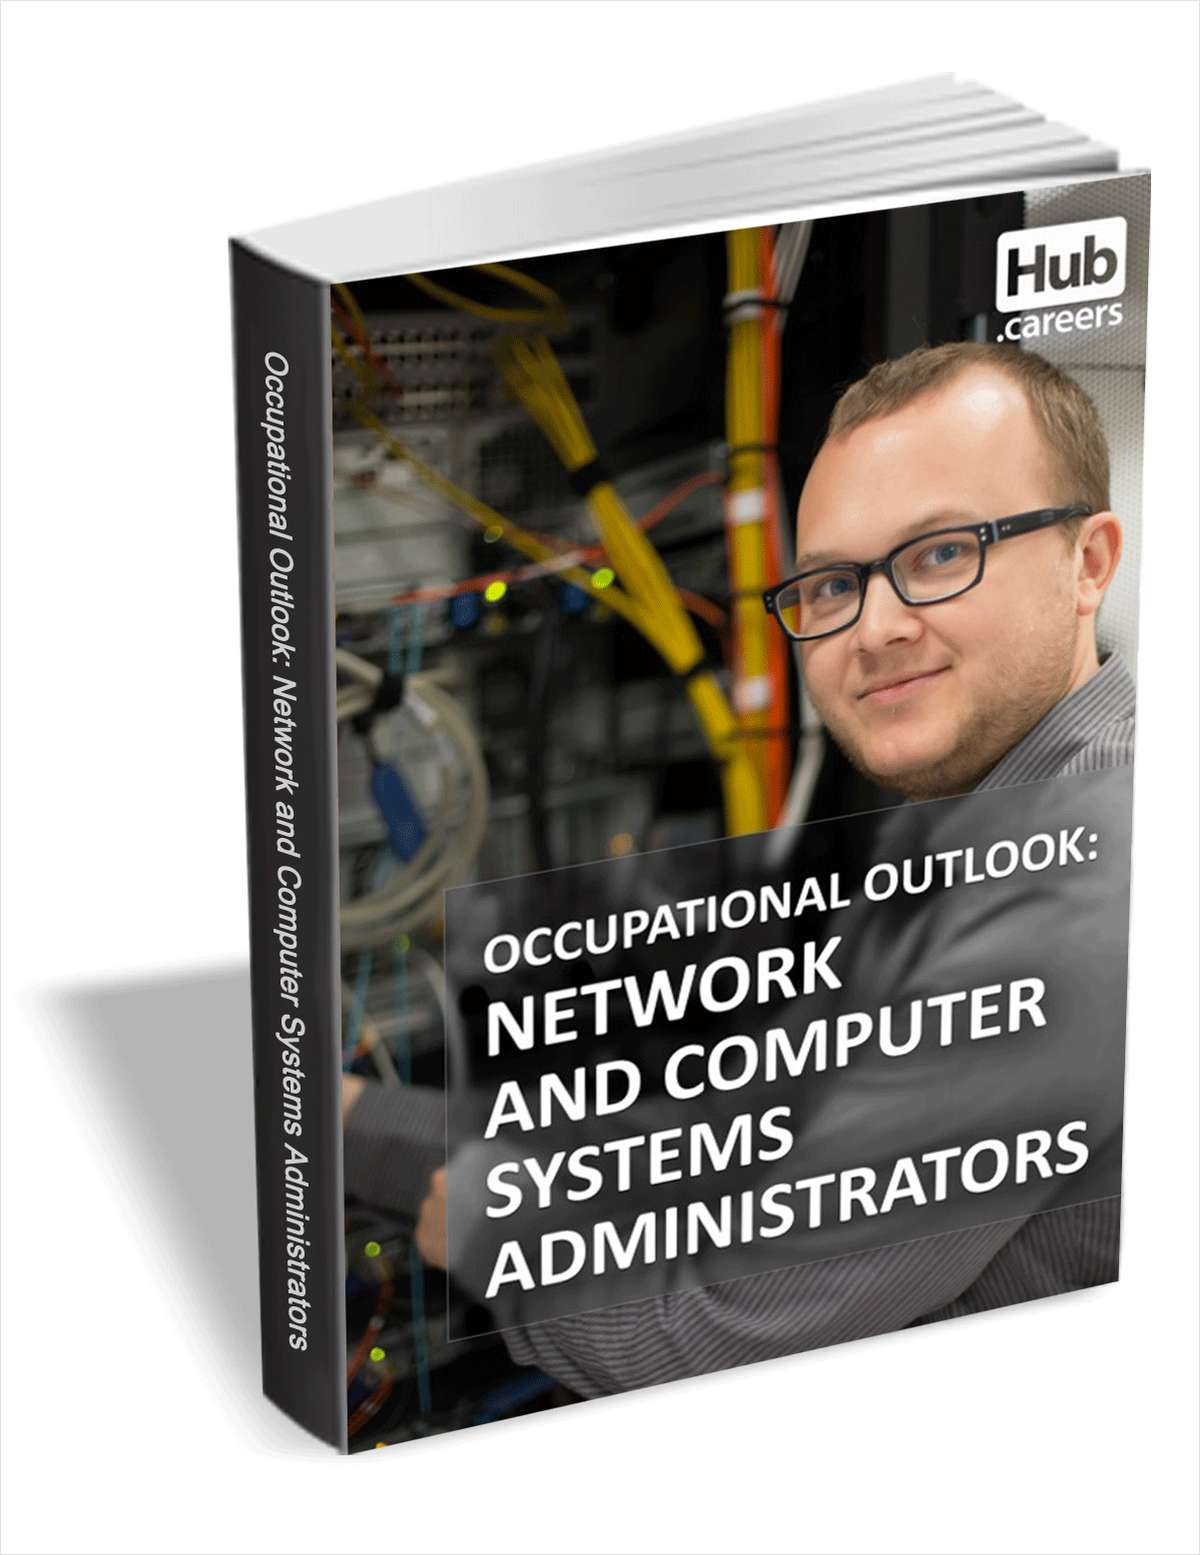 Network and Computer Systems Administrators - Occupational Outlook